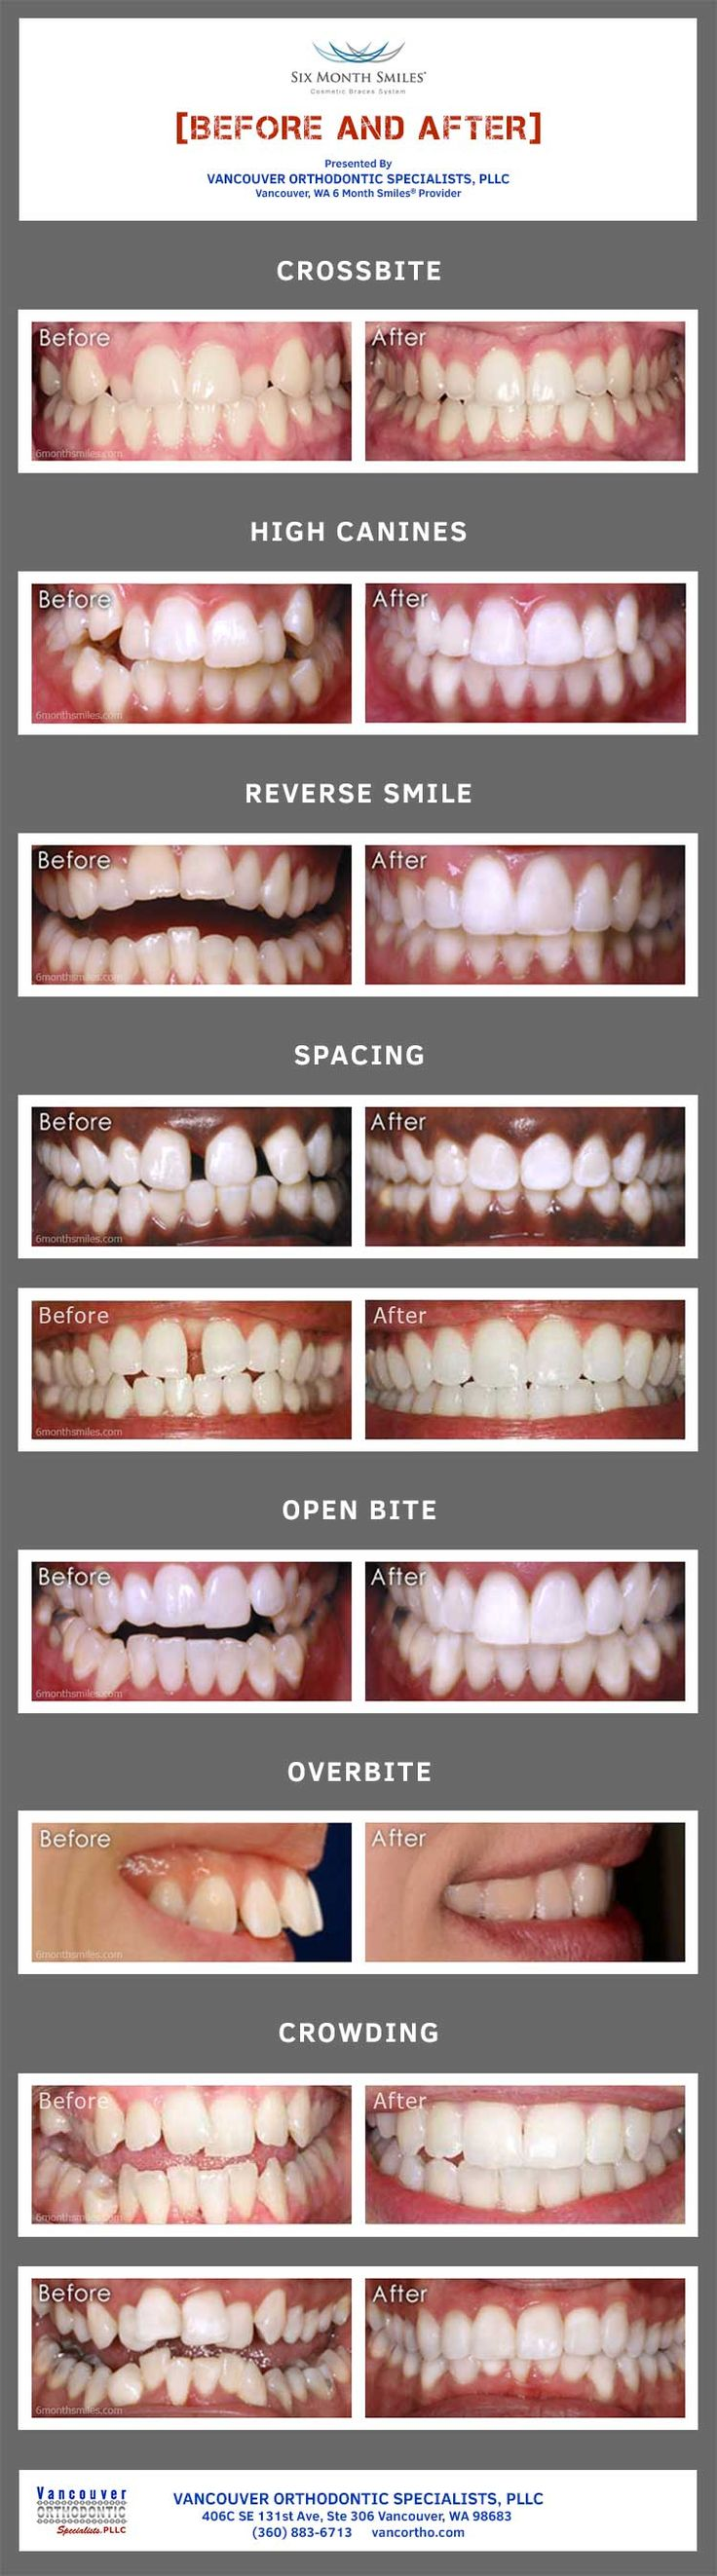 Before and after photos of 6 Month Smiles users.